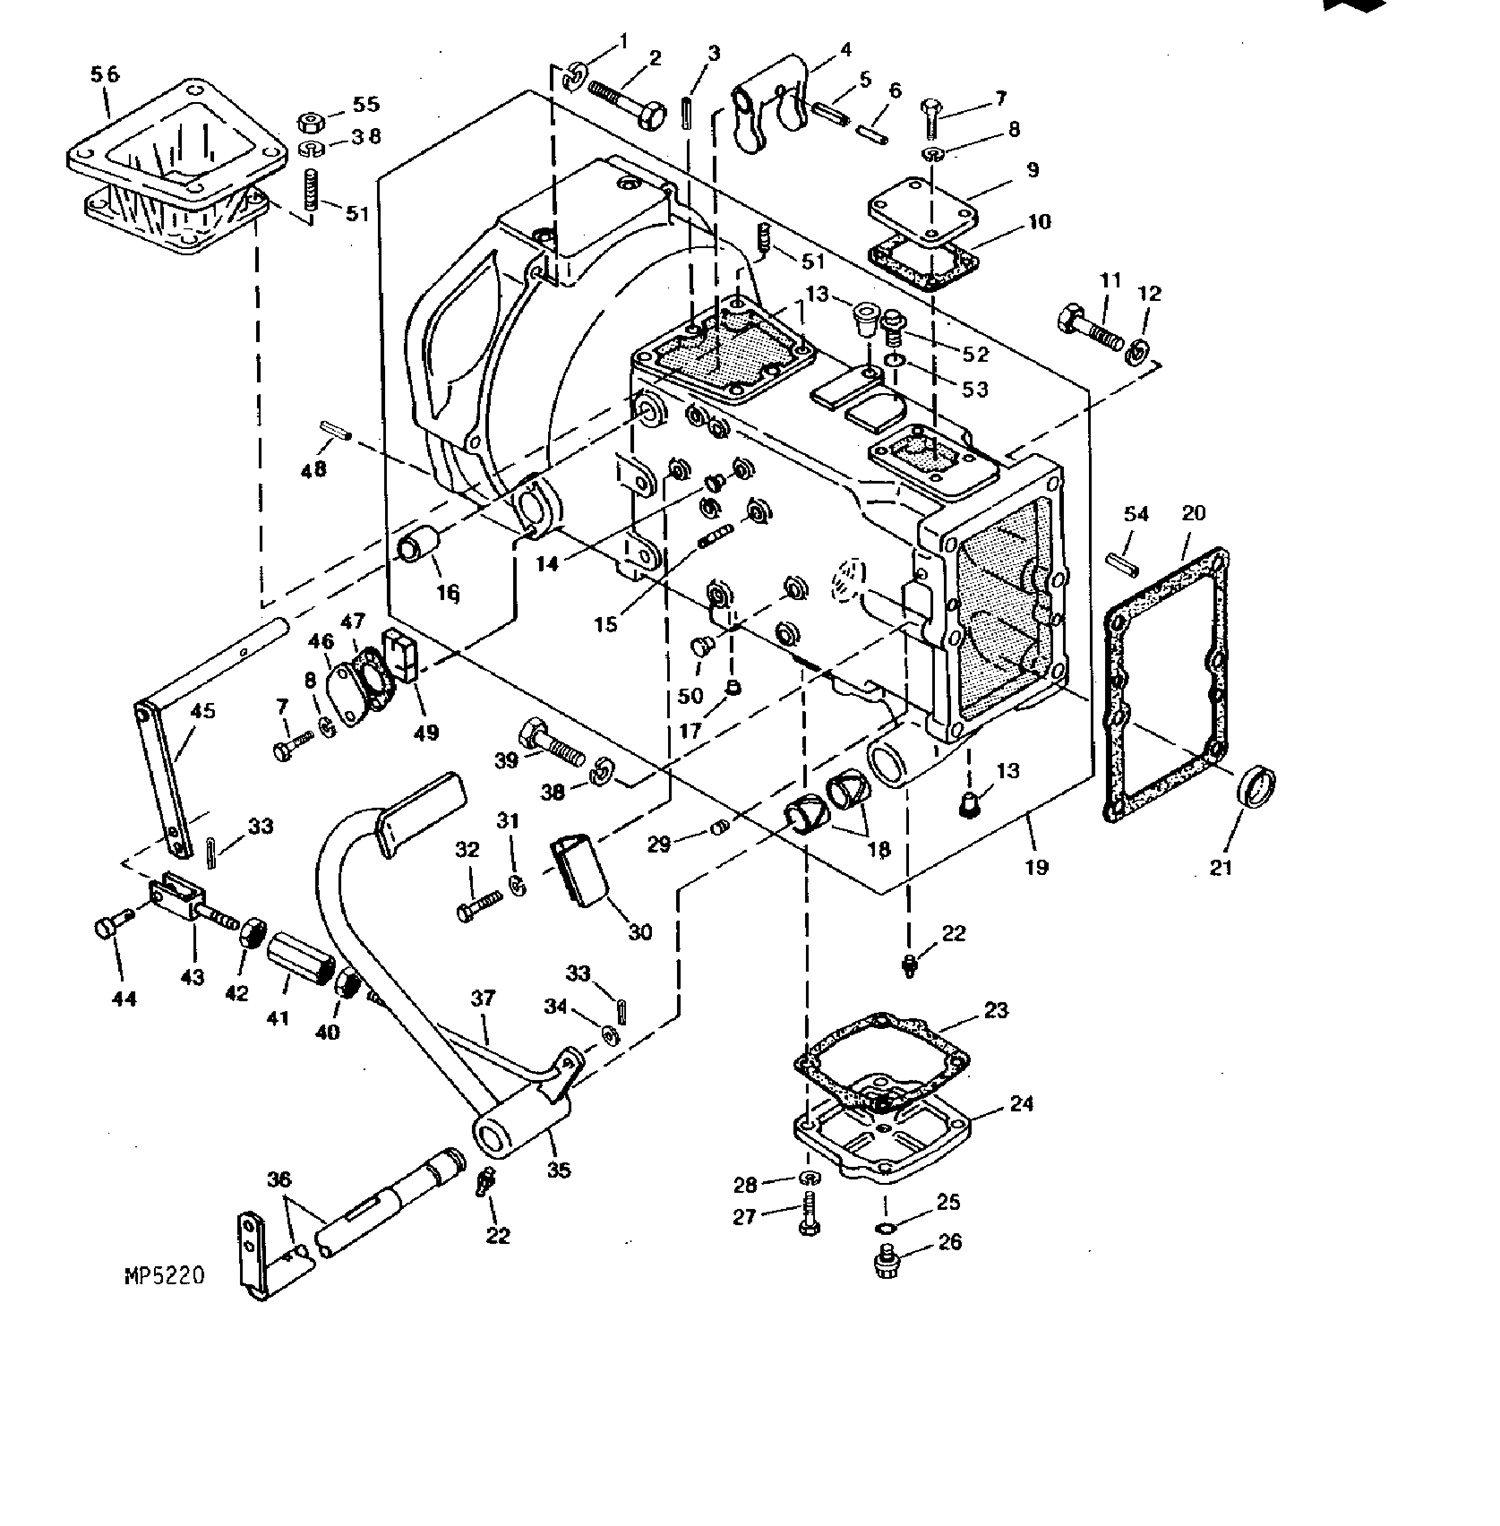 28 Parts John Deere 750 Wiring Diagram – John Deere 750 Wiring Diagram